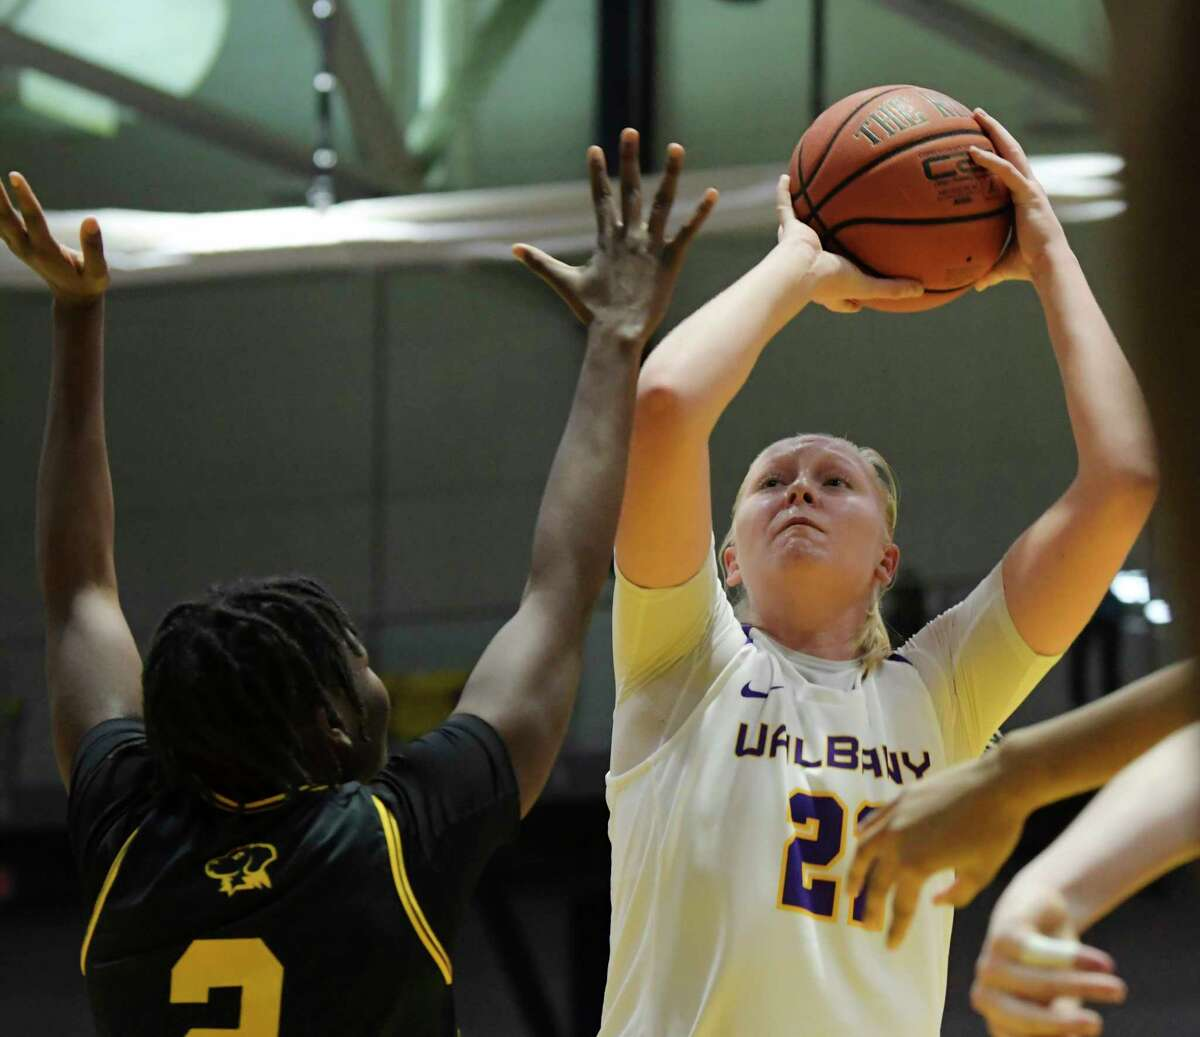 UAlbany's Helene Haegerstrand was selected to the America East all-conference third team. (Paul Buckowski/Times Union)